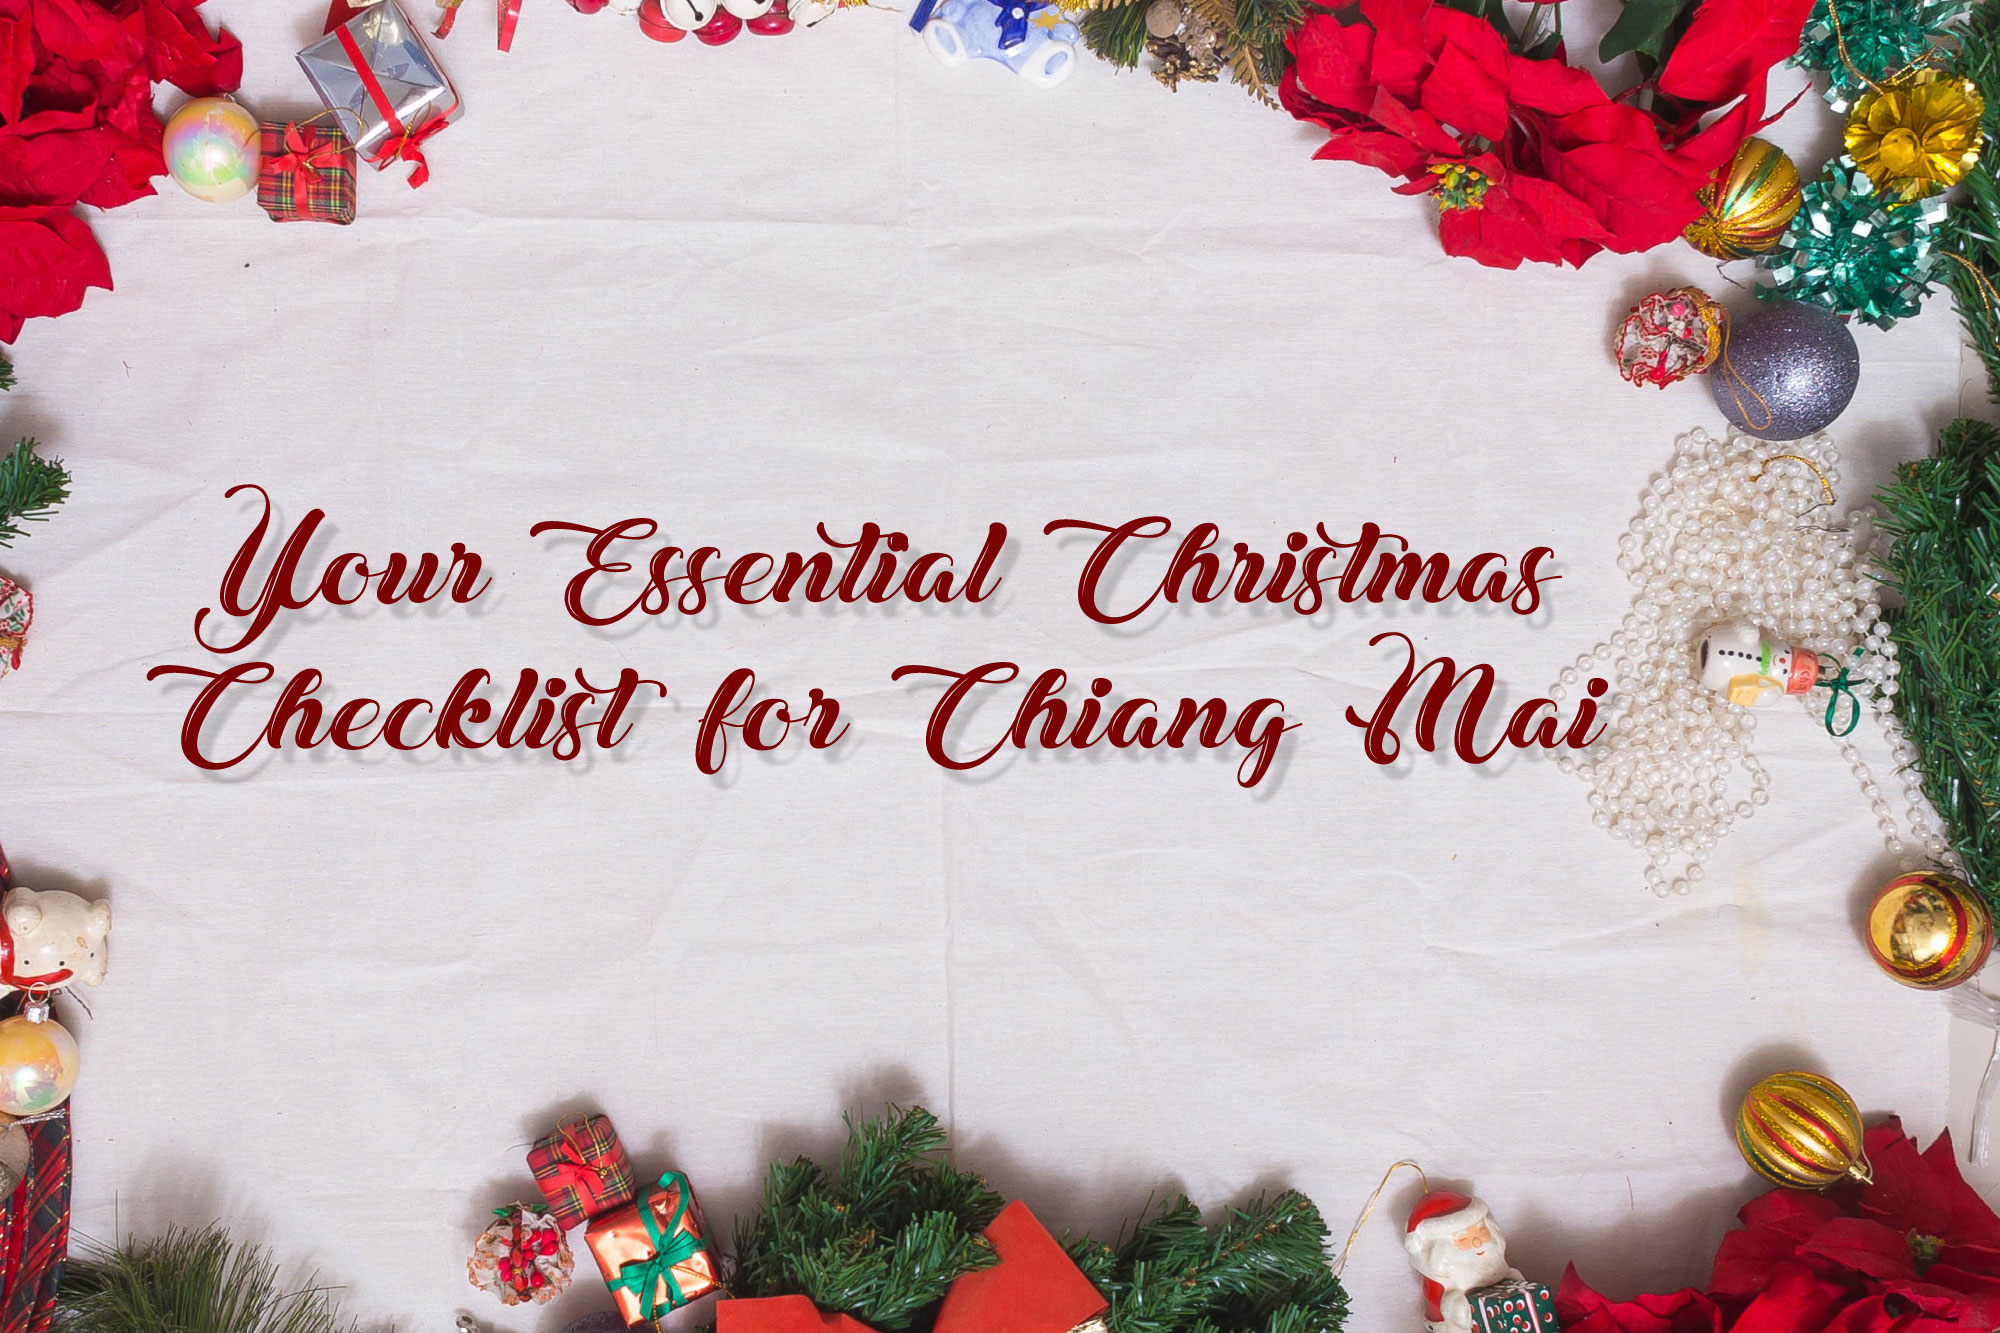 Chiang Mai Citylife - Your Essential Christmas Checklist for Chiang Mai